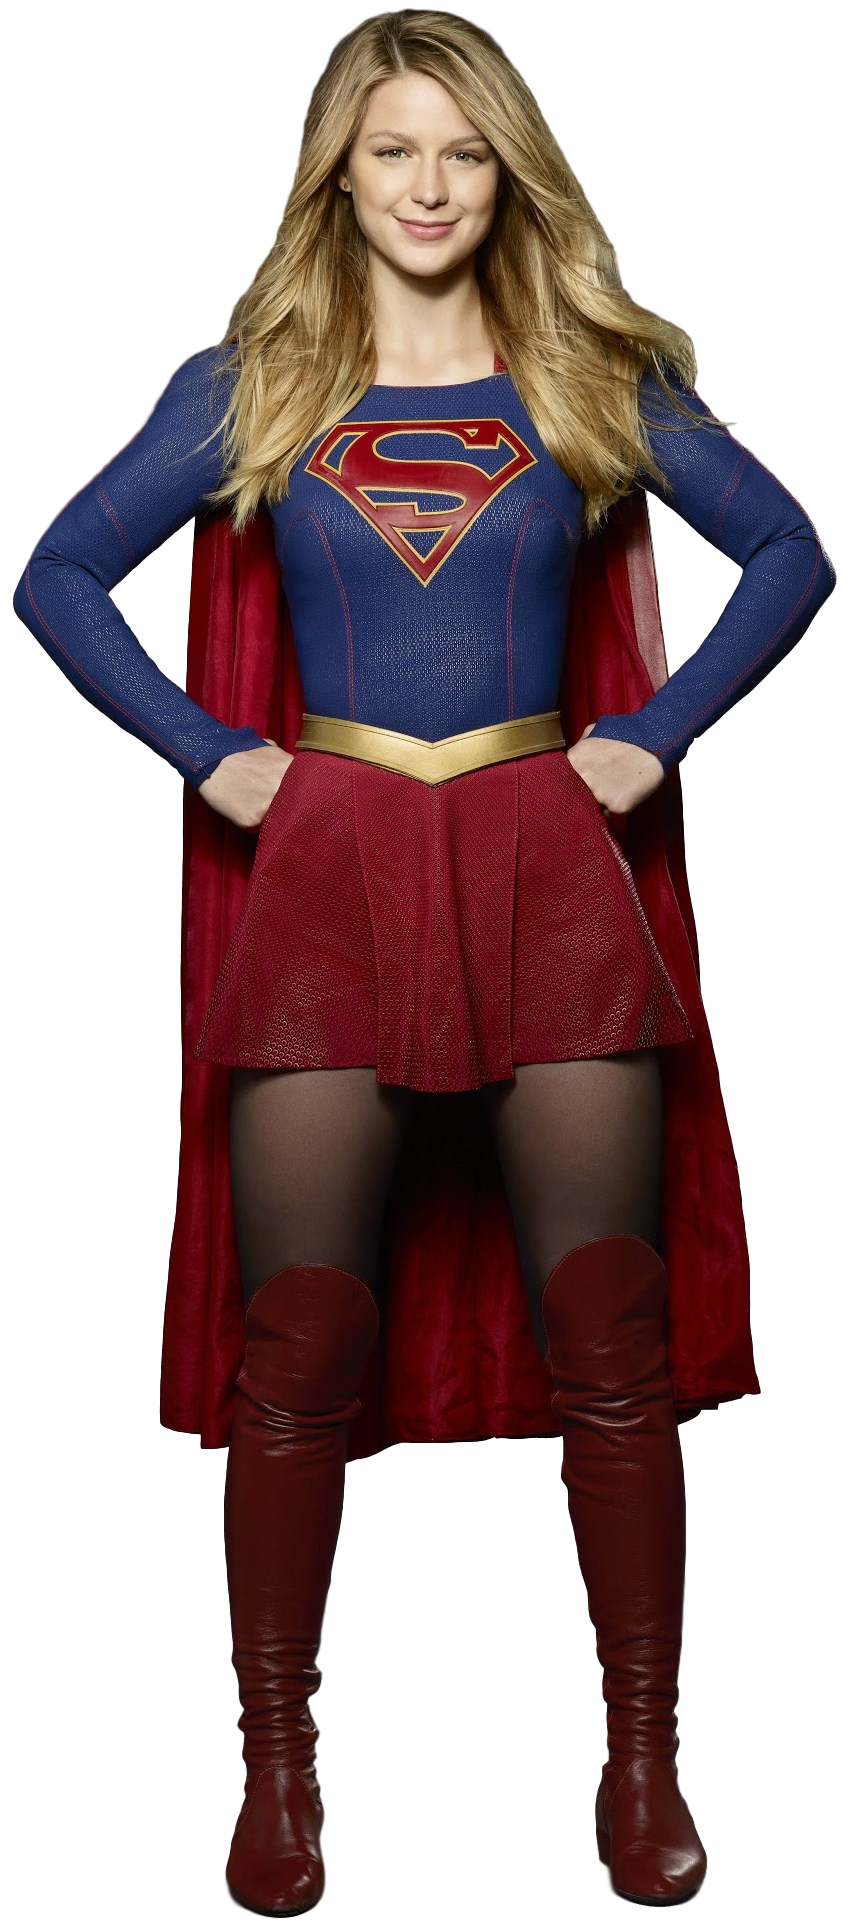 . PlusPng.com Supergirl - Transparent Background! by Camo-Flauge - Supergirl PNG